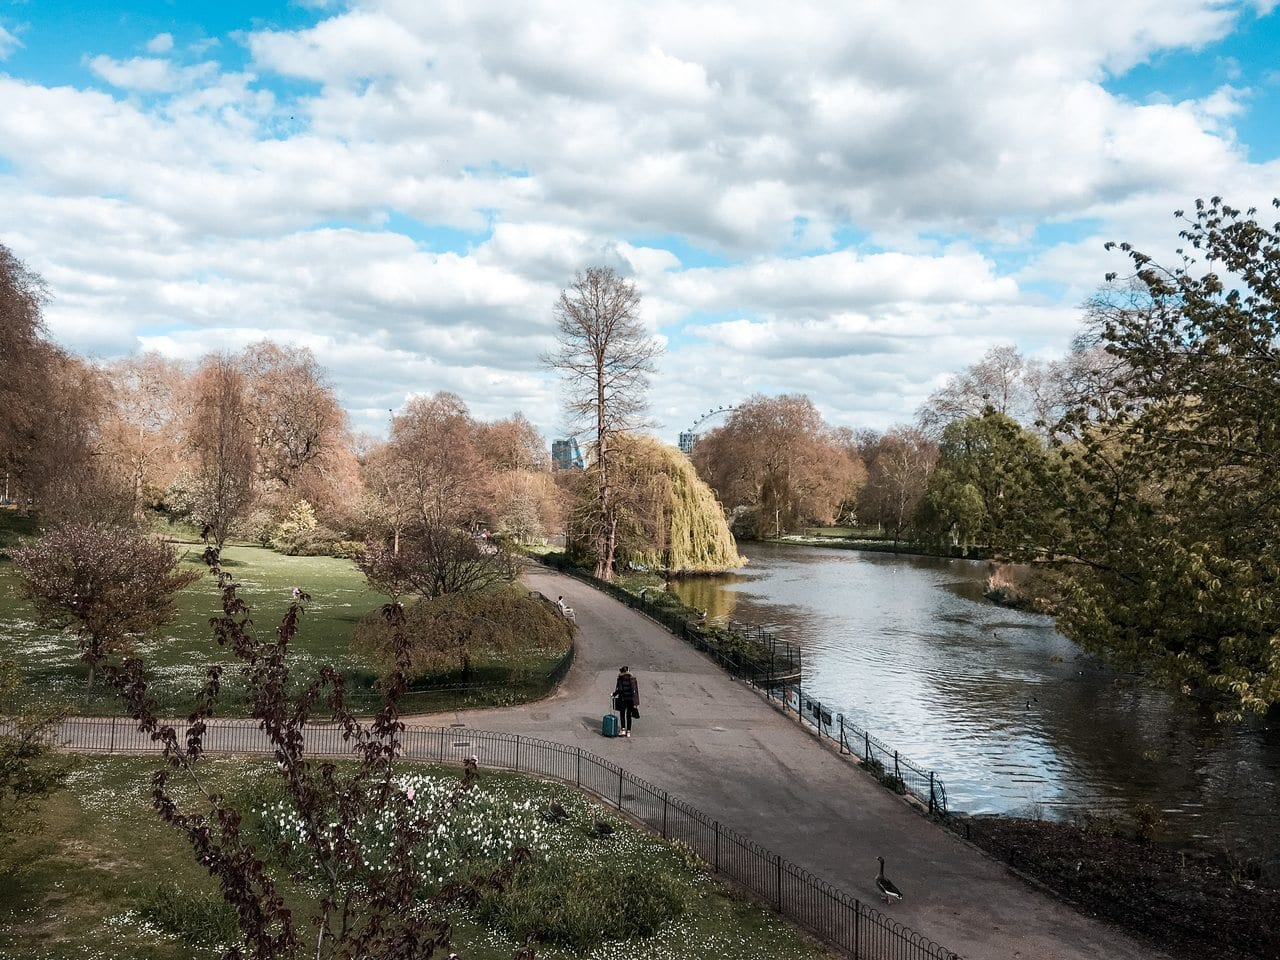 St James' Park in London, England in April 2020